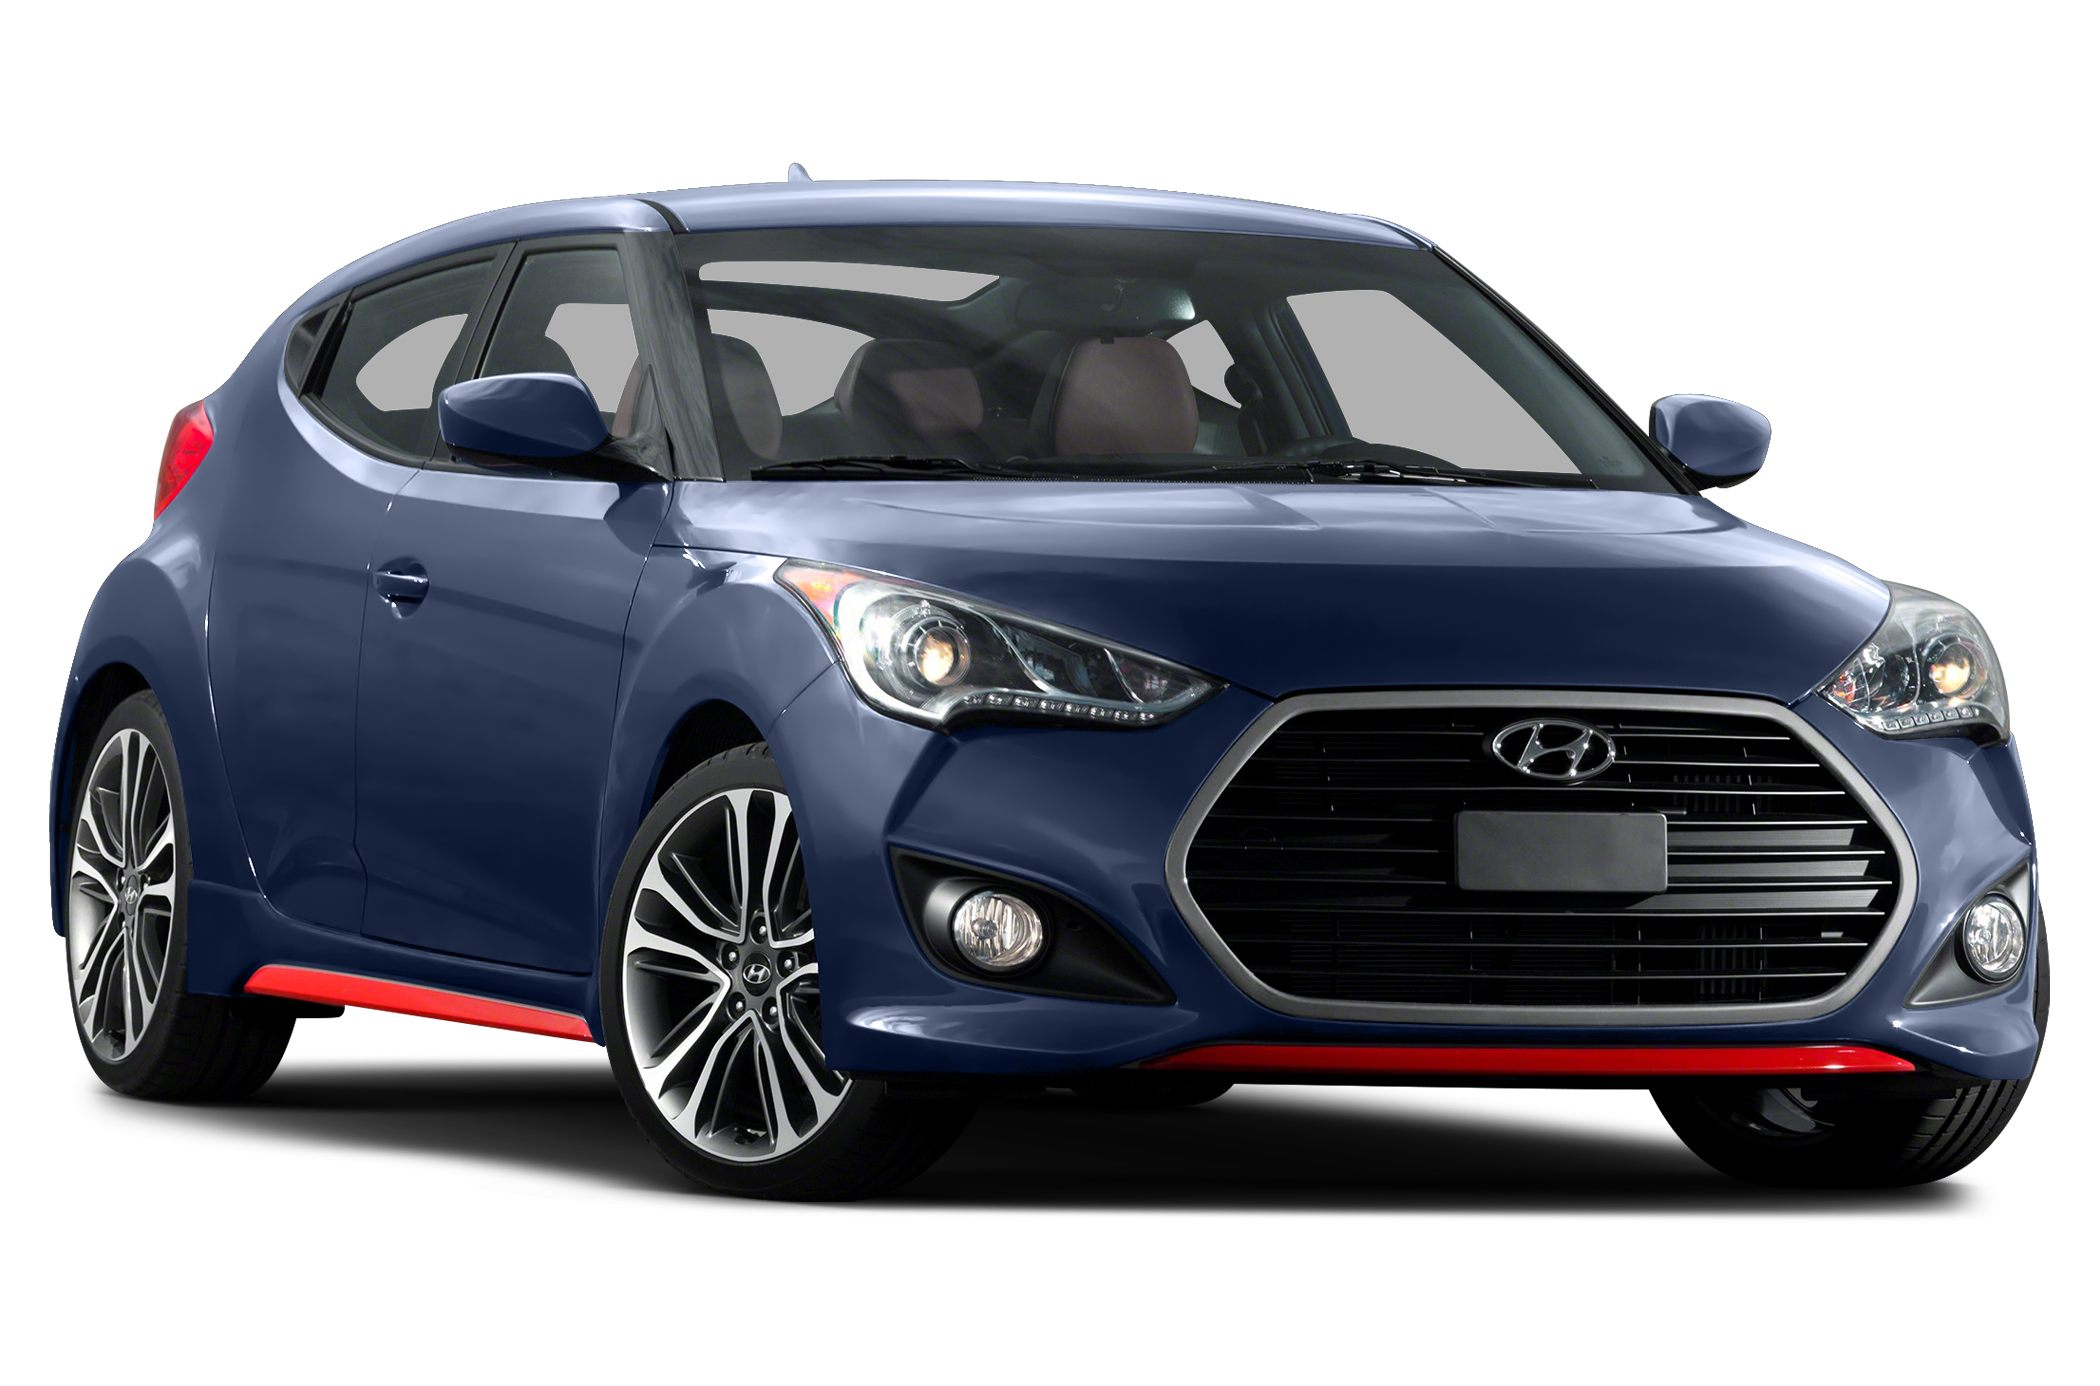 2016 Hyundai Veloster Turbo R Spec 3dr Hatchback Pricing and Options